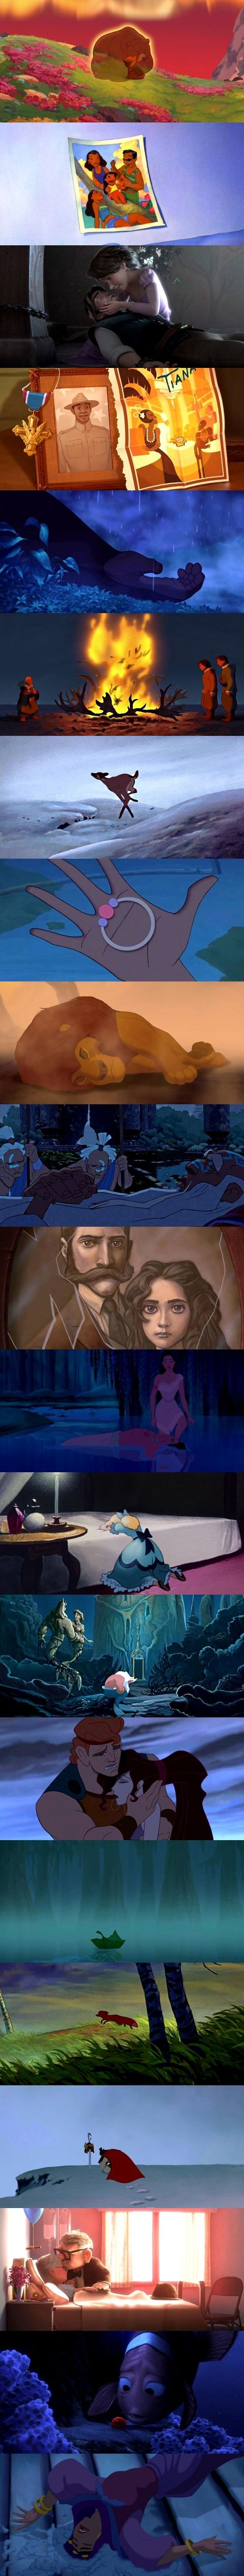 Disney deaths created so simply but tragically, giving us a sharp taste of reality and sadness in the joyful movies. ALLL THE FEEEEEEELLLLSSS